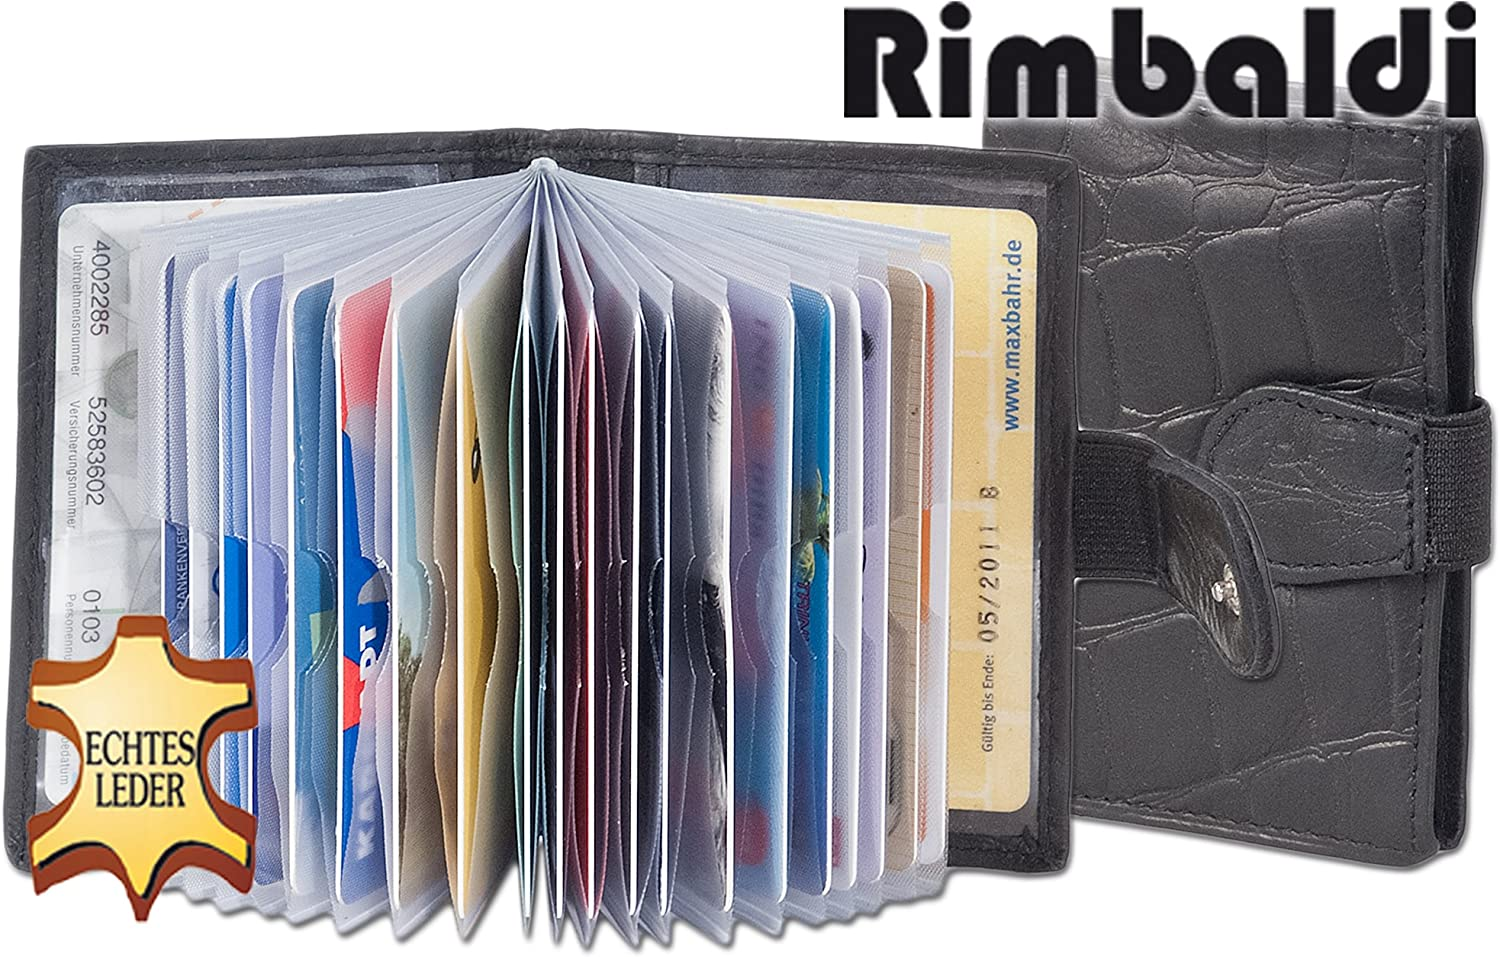 Rimbaldi Credit Card holder with 22 slots made of untreated cowhide